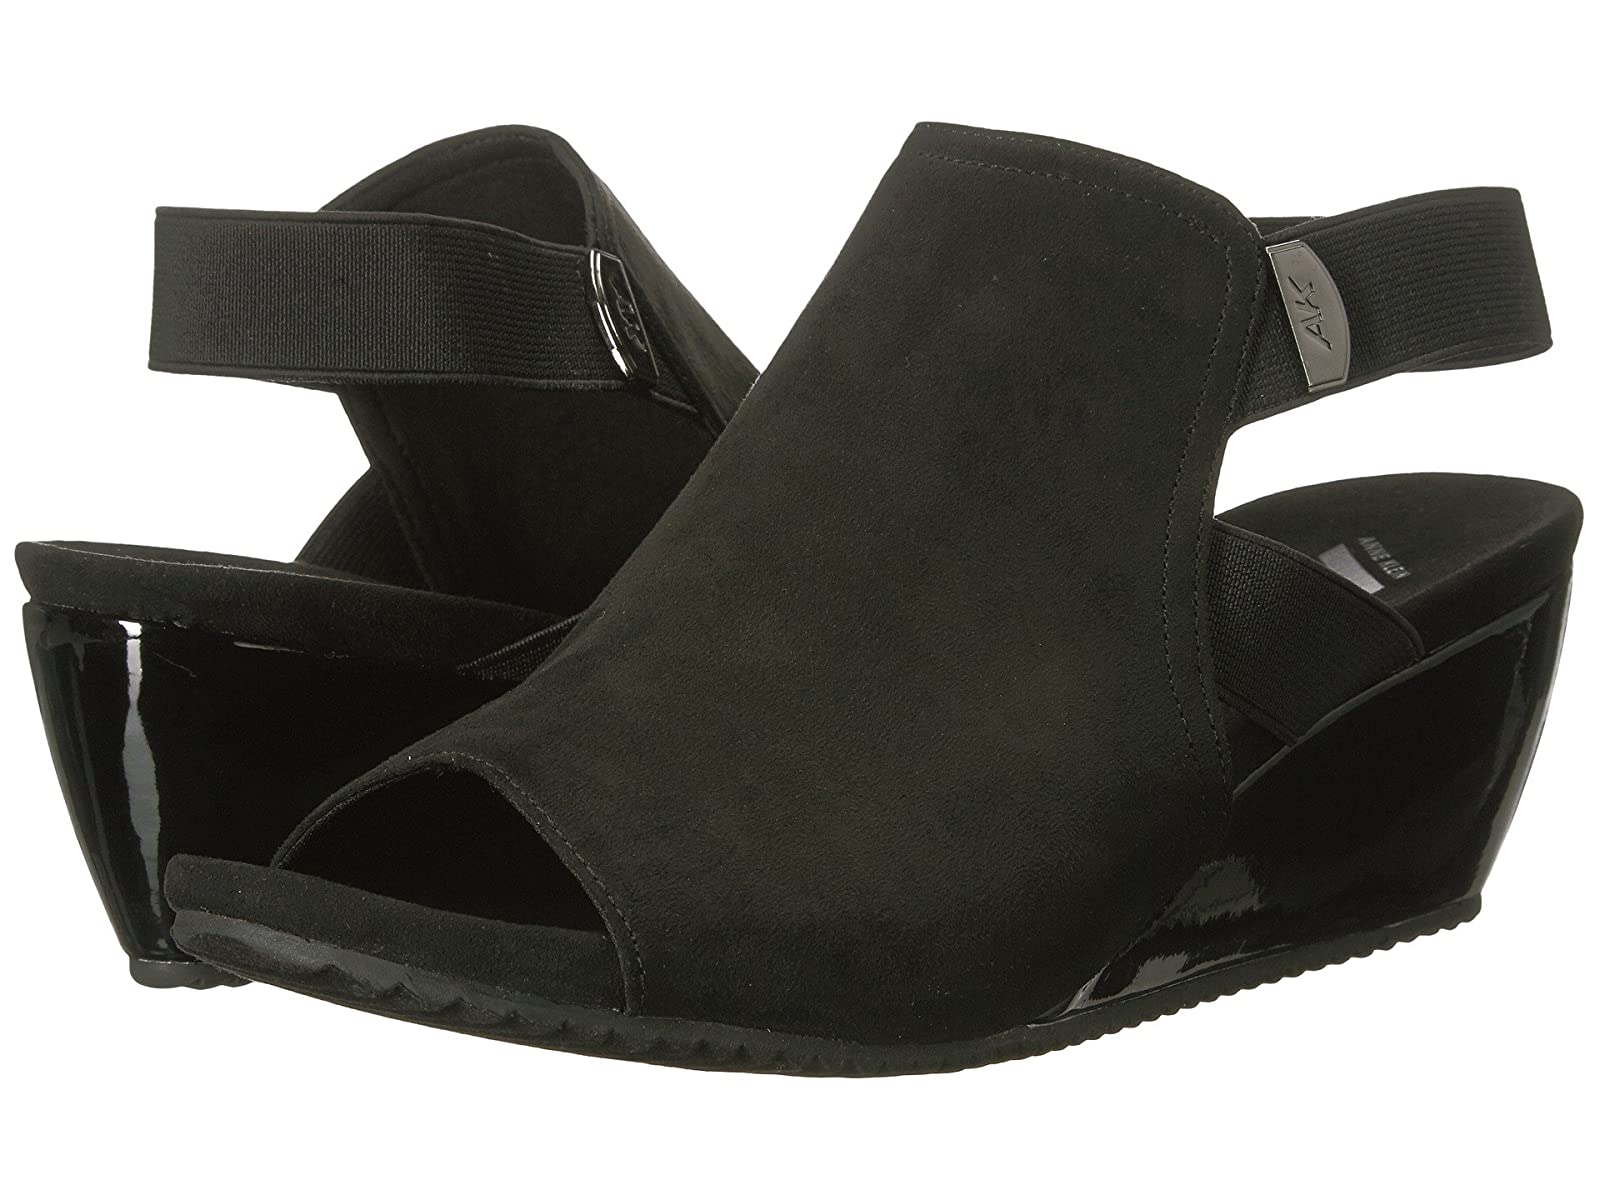 Anne Klein ChannyngCheap and distinctive eye-catching shoes